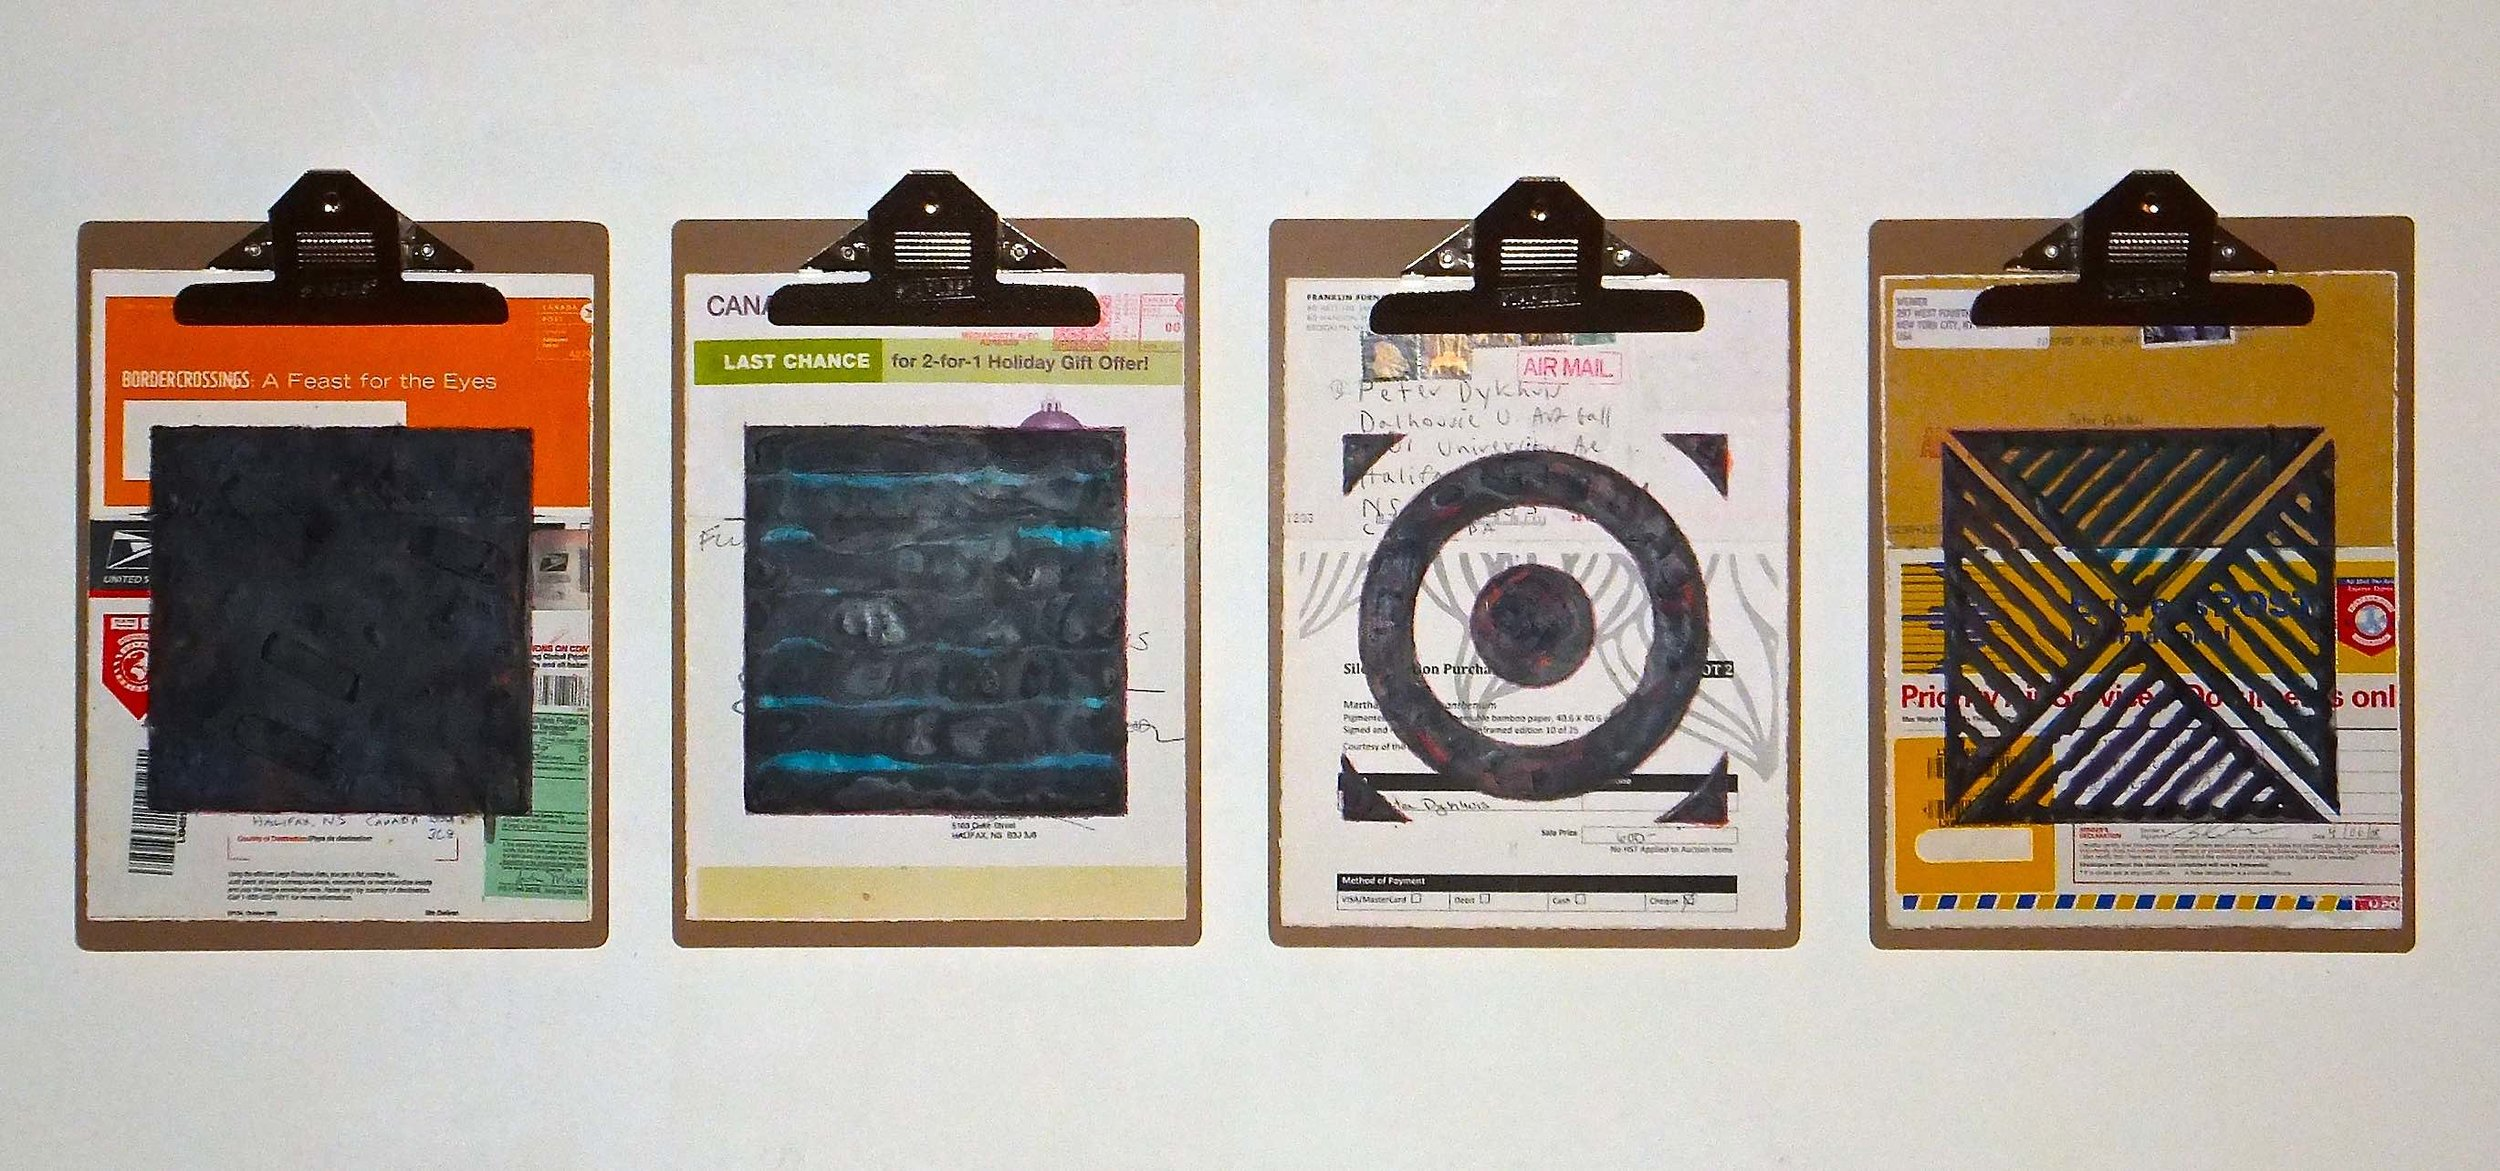 """Art World #2, 2014, encaustic, mixed media collage on paper, mounted on 4 commercial clipboards 13"""" × 39"""", set of clipboards depicted counts as one artwork, 300 CAD"""